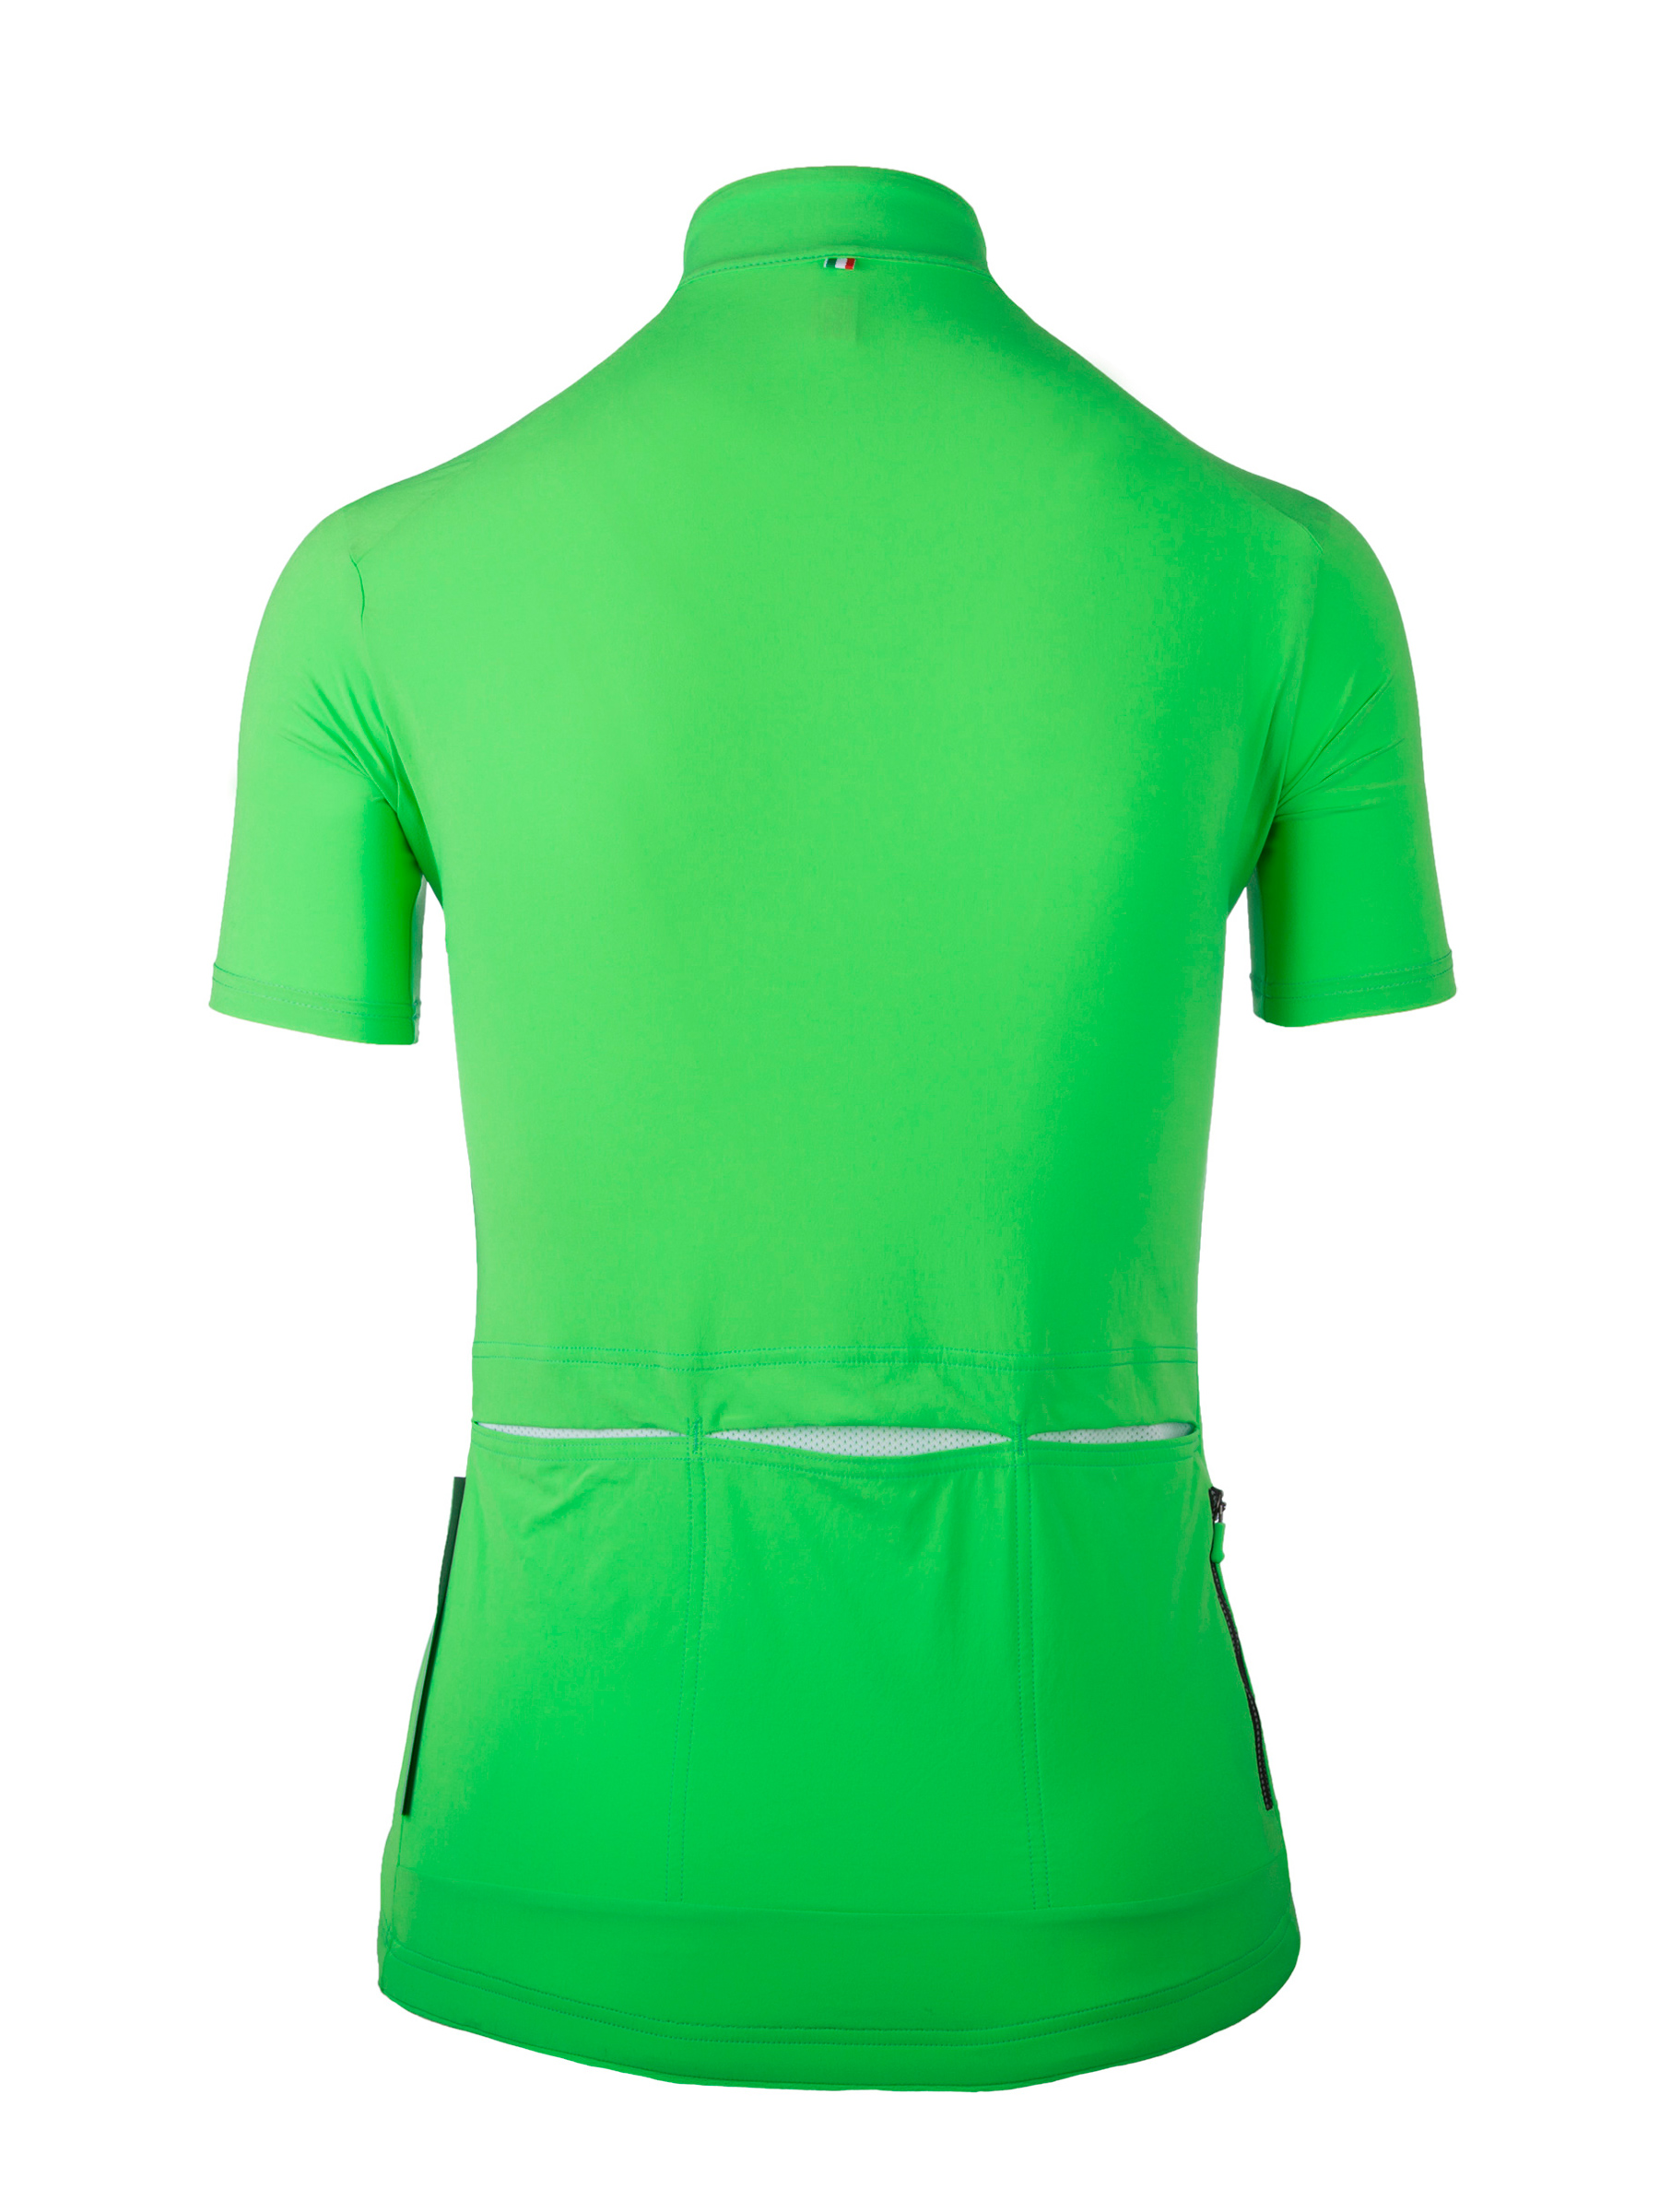 Maillot Jersey short sleeve L1 lady